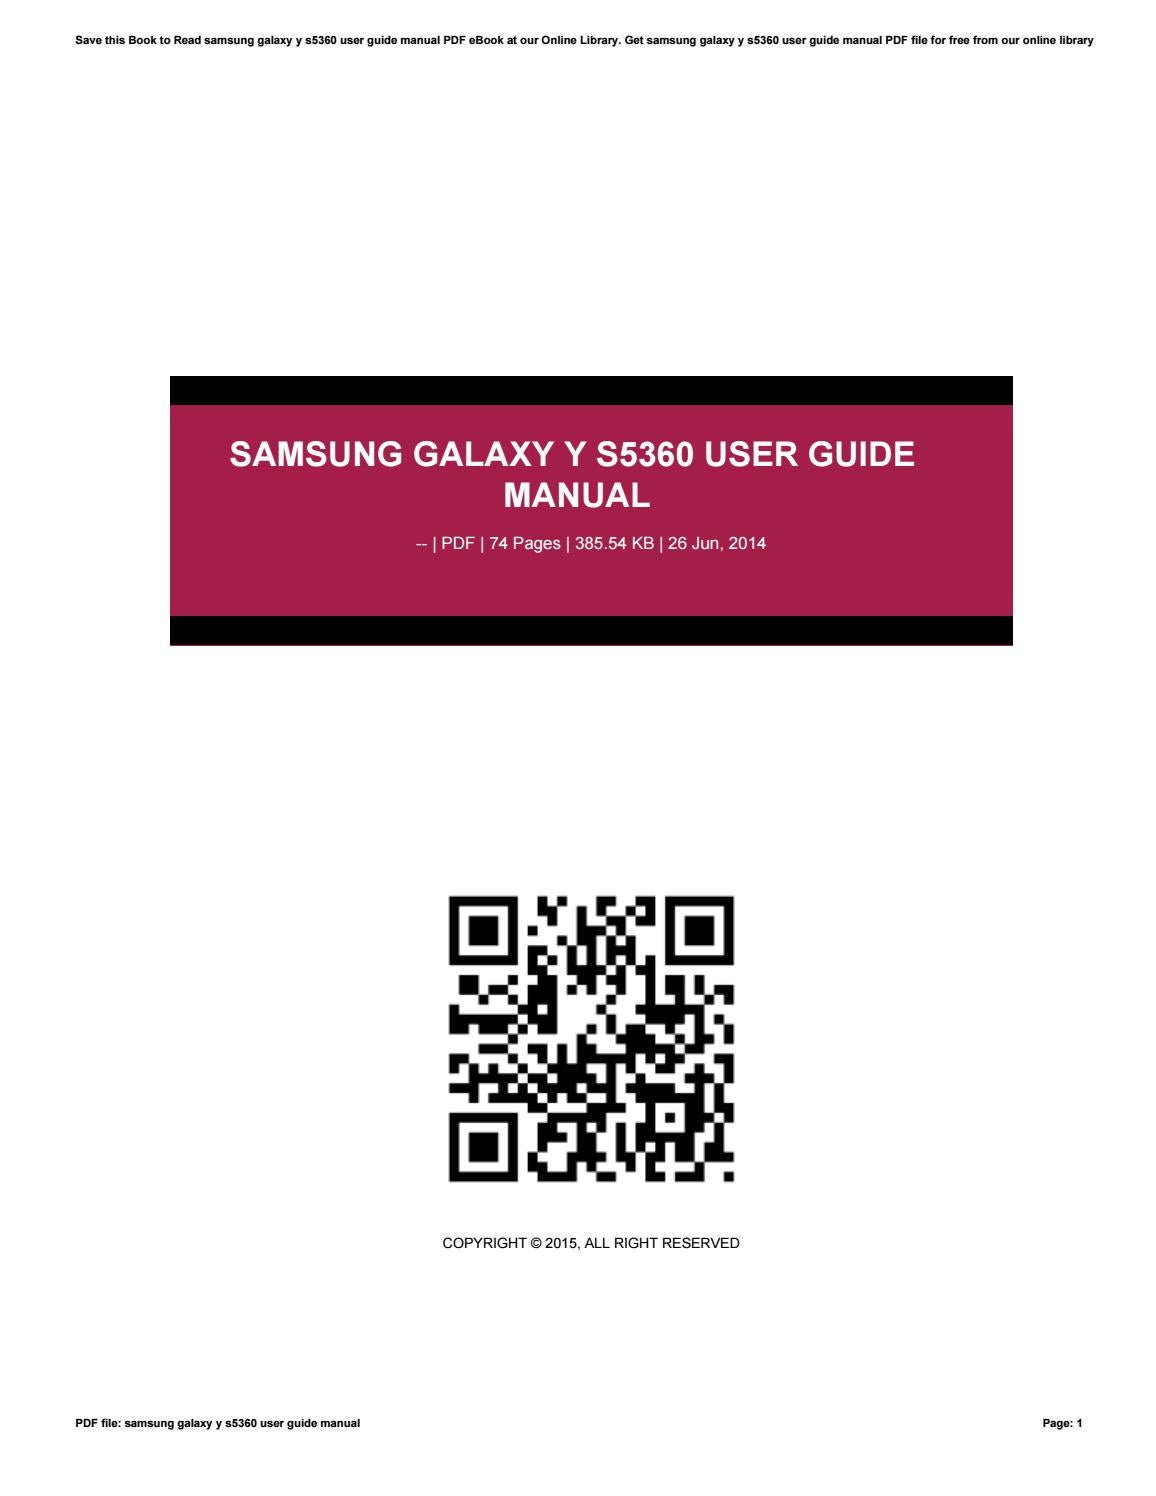 Download user-manual-of-samsung-galaxy-y-duos-gt-s6102.